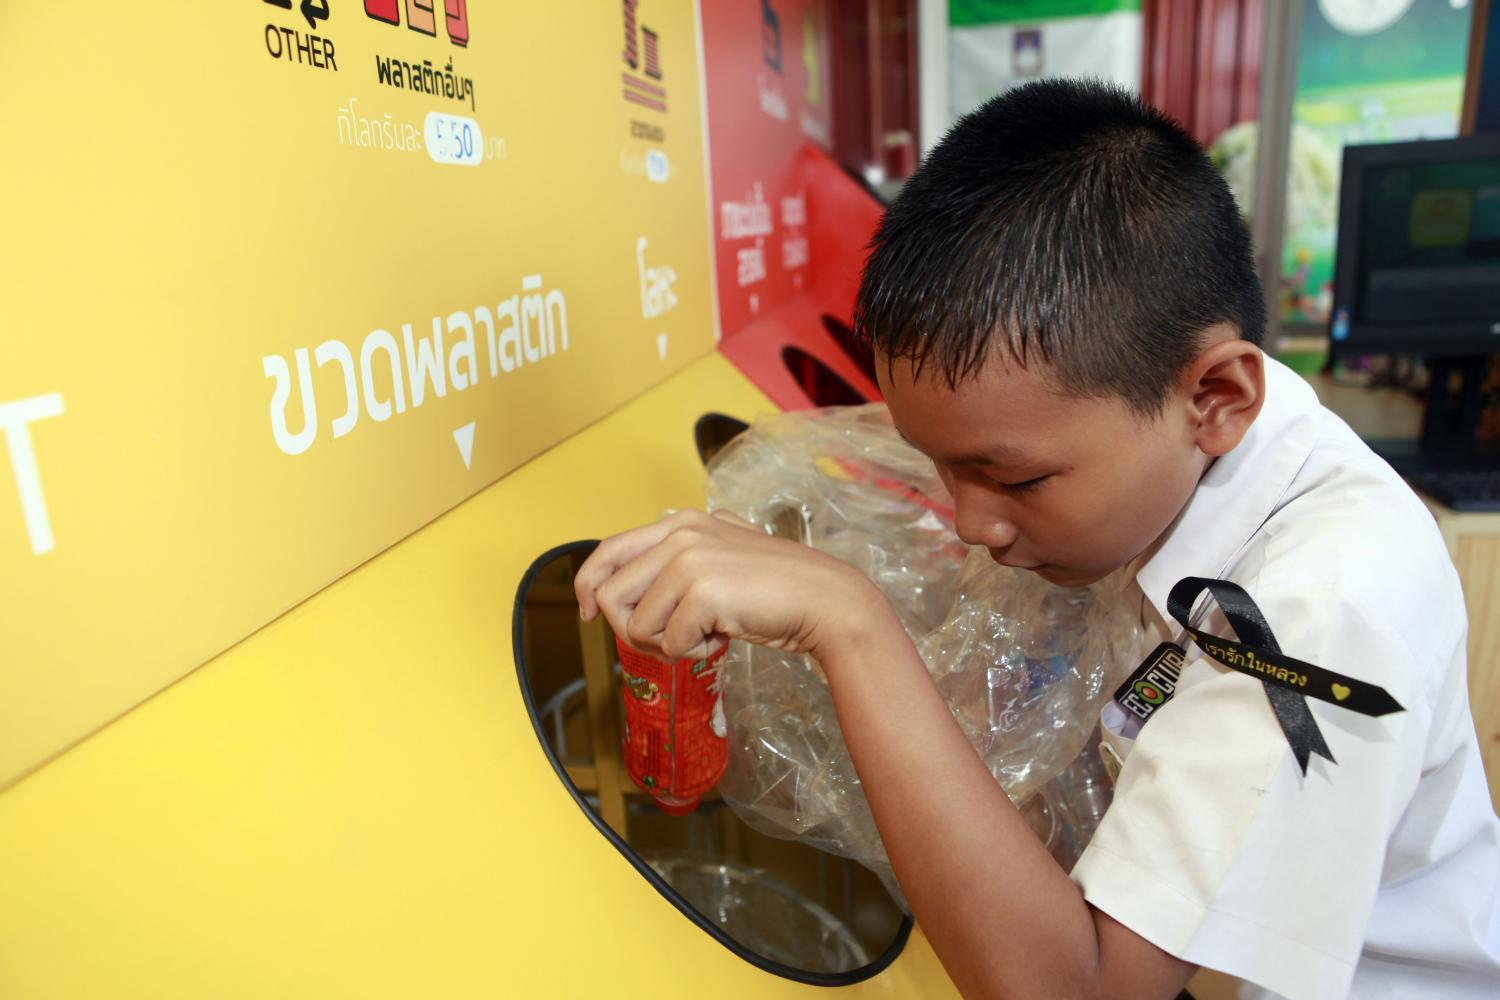 A student puts empty plastic bottles into a recycling separation bin at a waste management system learning centre at Praram 9 Kanchanapisek School. Apichart Jinakul